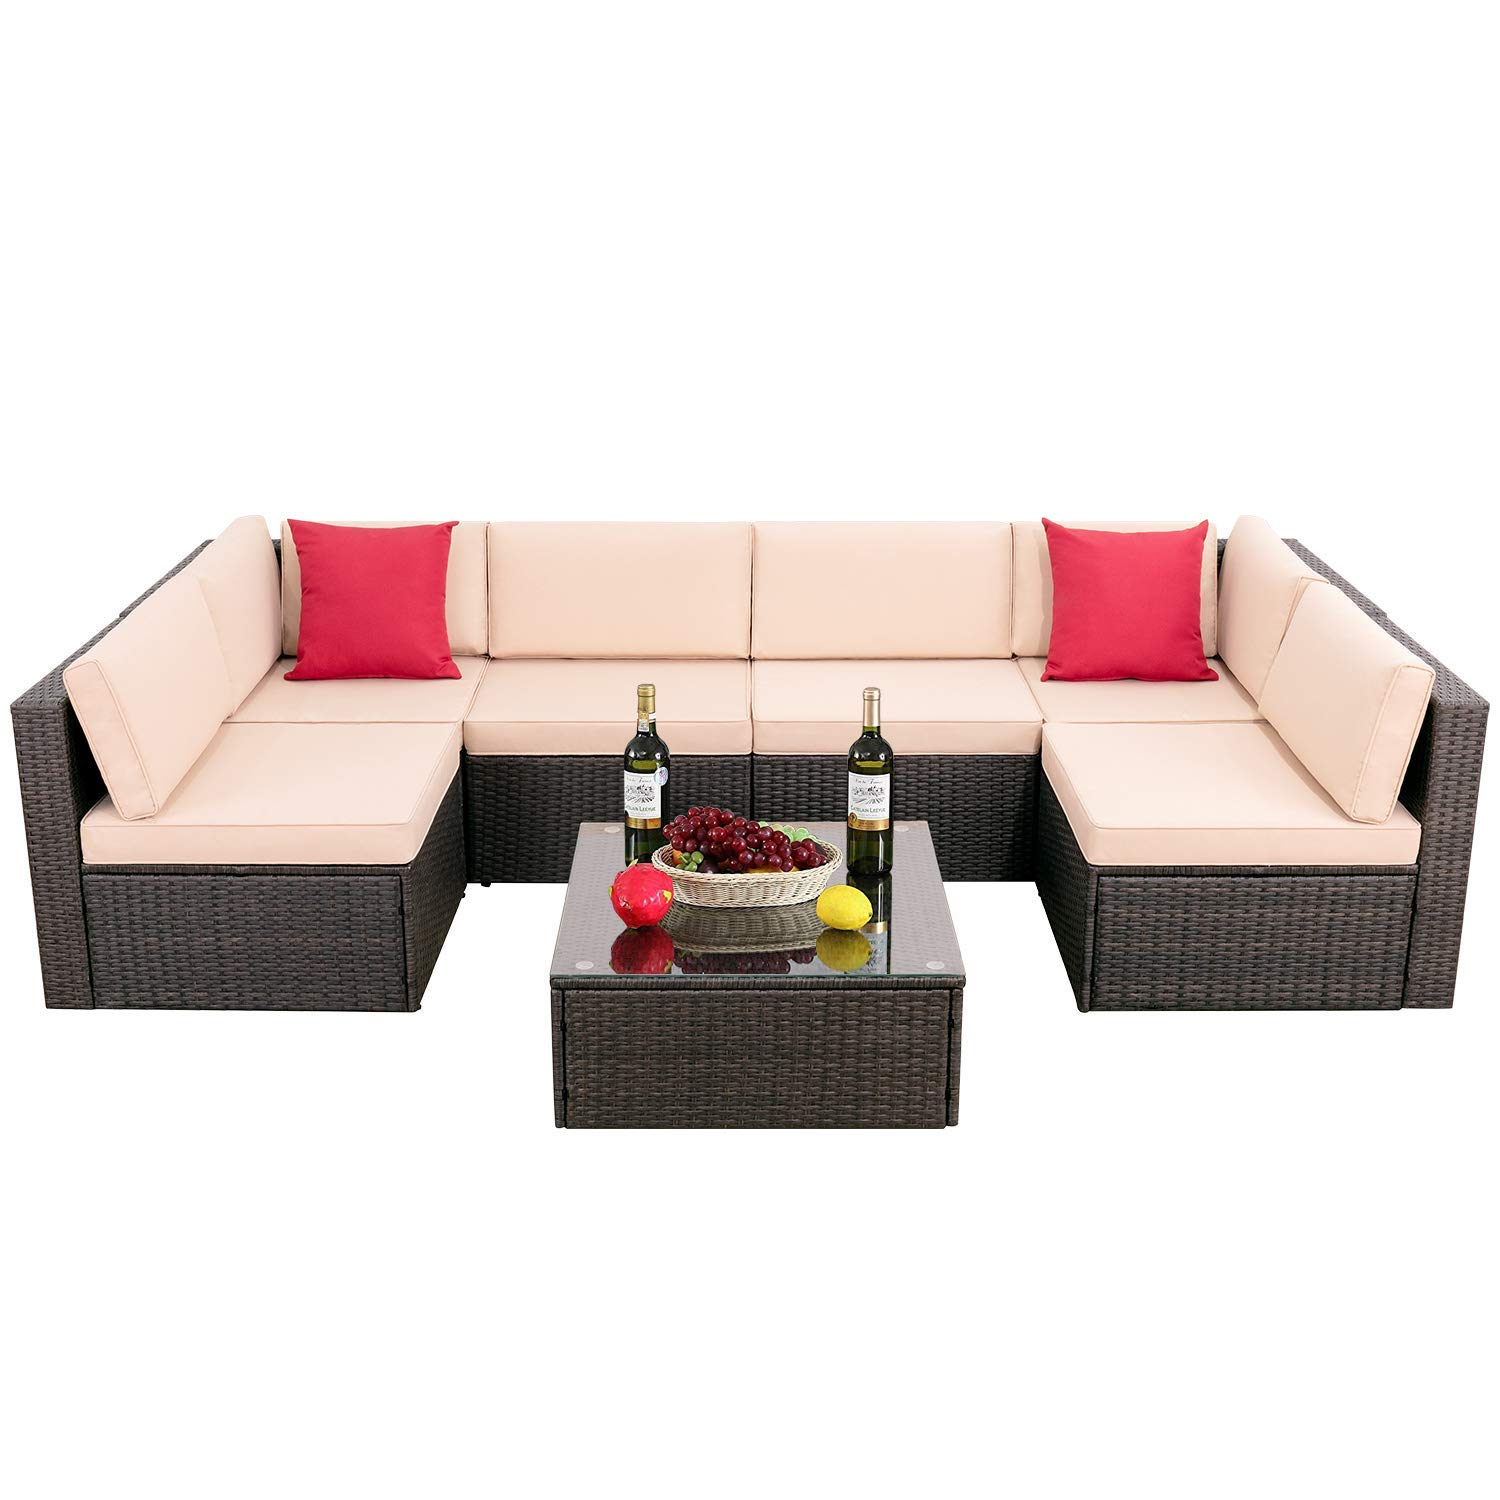 Devoko 7 Pieces Outdoor Sectional Sofa All-Weather Patio Furniture Sets Manual Weaving Wicker Rattan Patio Conversation Sets with Cushion and Glass Table Brown